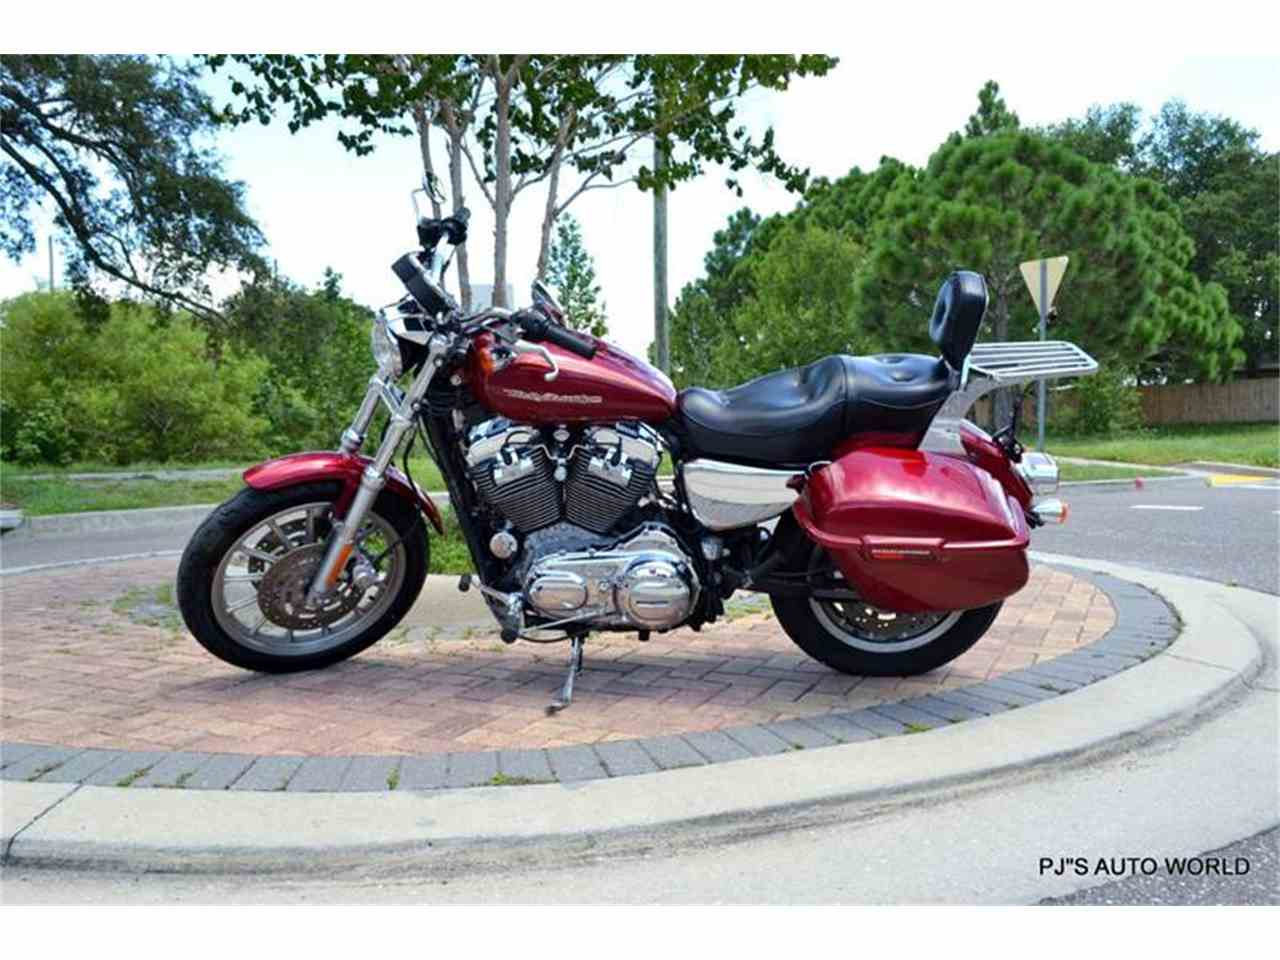 Large Picture of '04 Harley-Davidson Sportster located in Clearwater Florida - $6,300.00 - 91G4